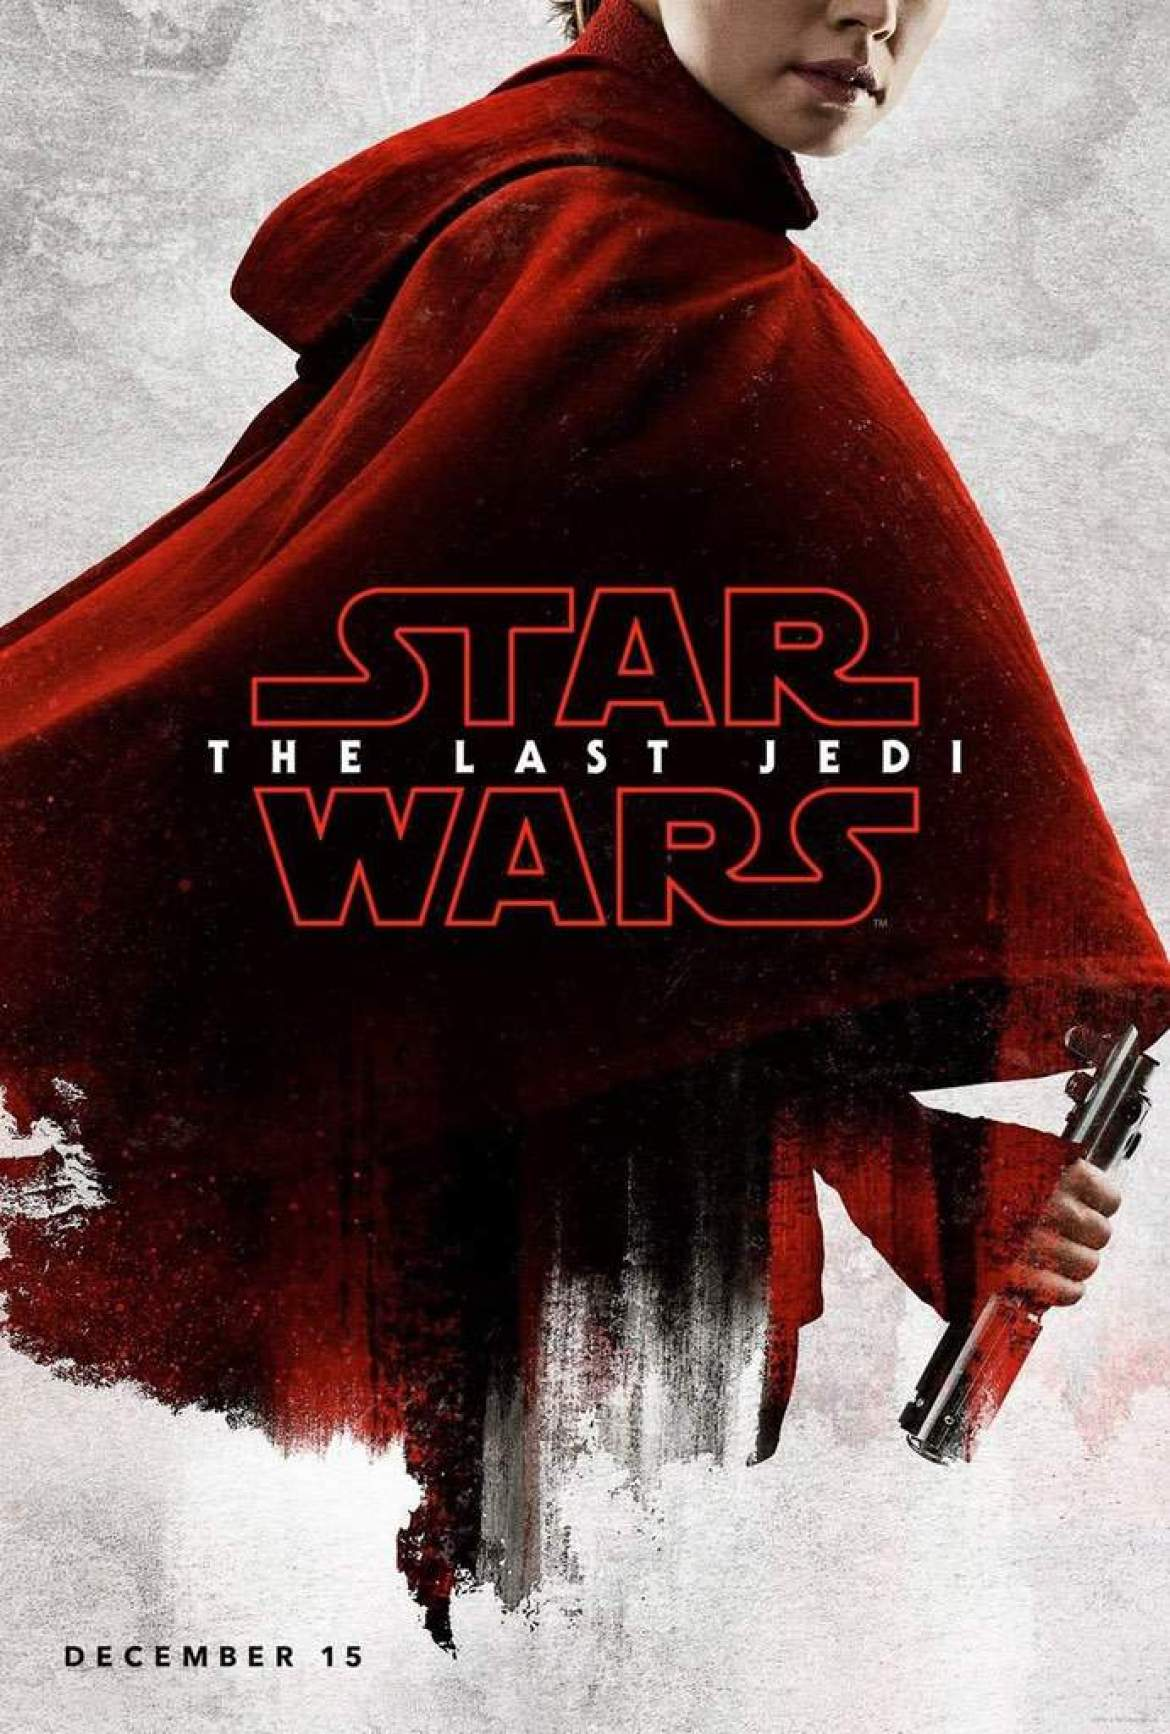 IMG 9259 - Six Star Wars: The Last Jedi character posters